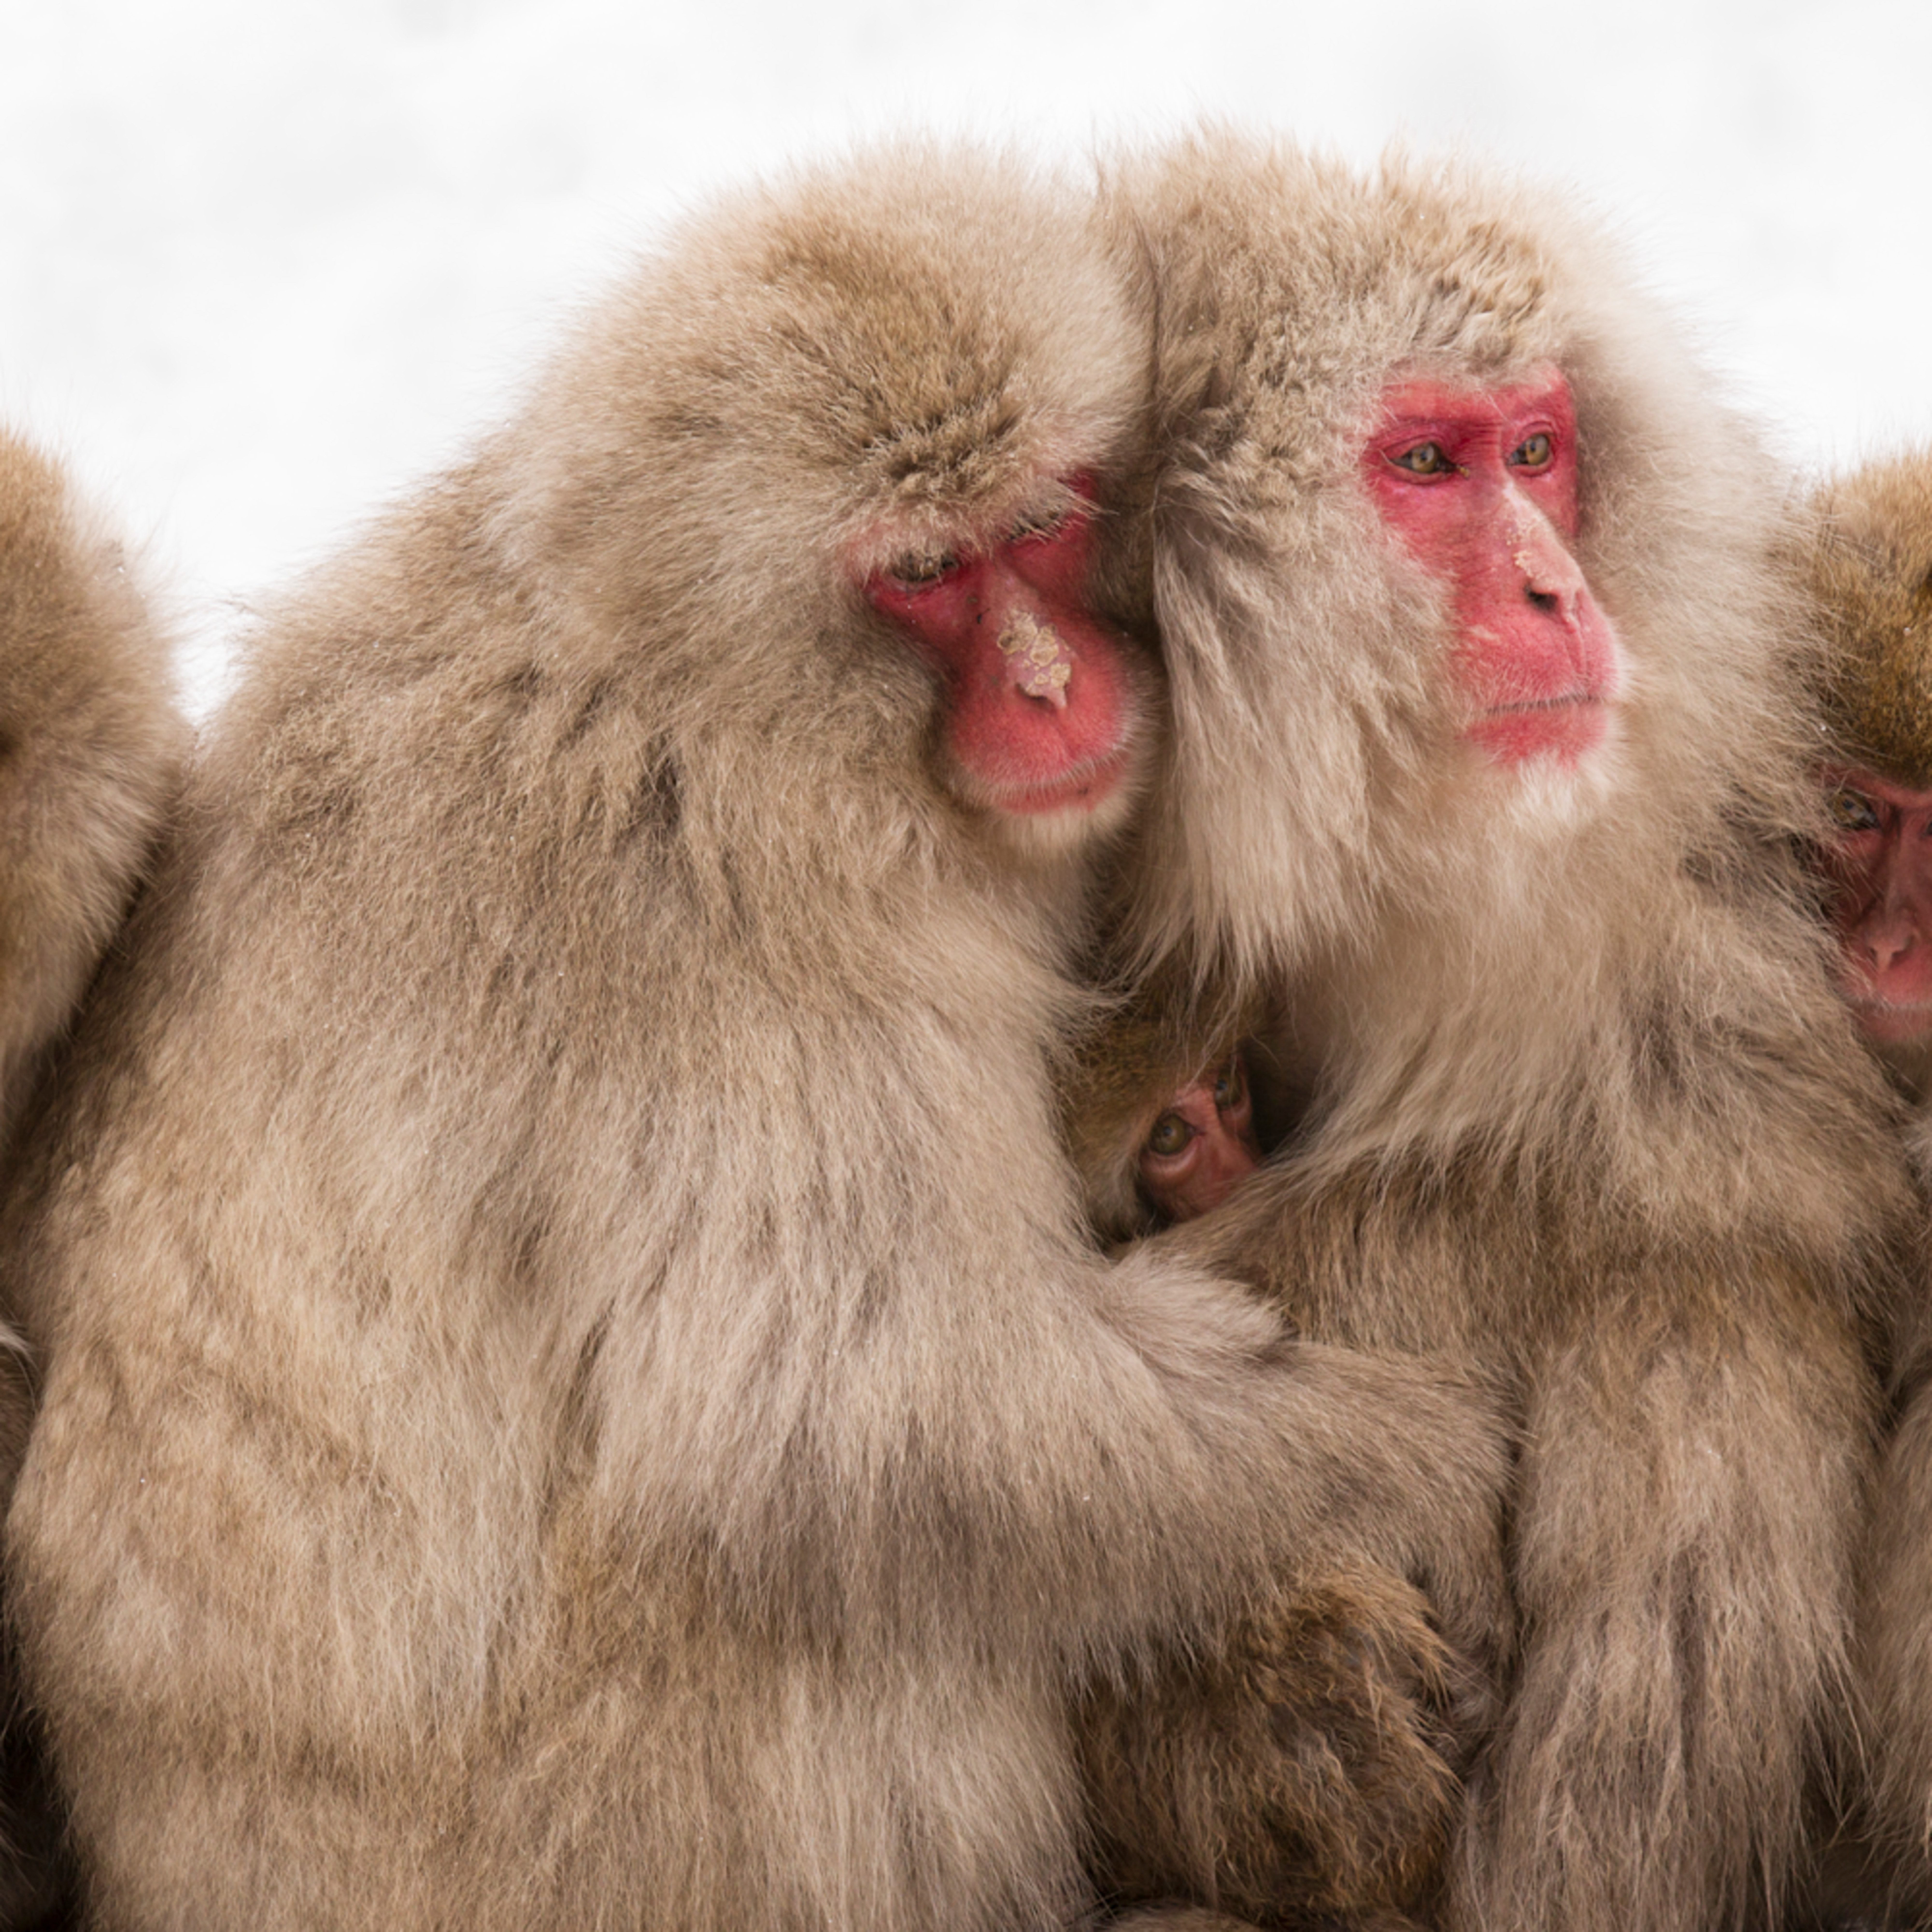 Mbp snow monkeys 20120214 6740 jlgvlm